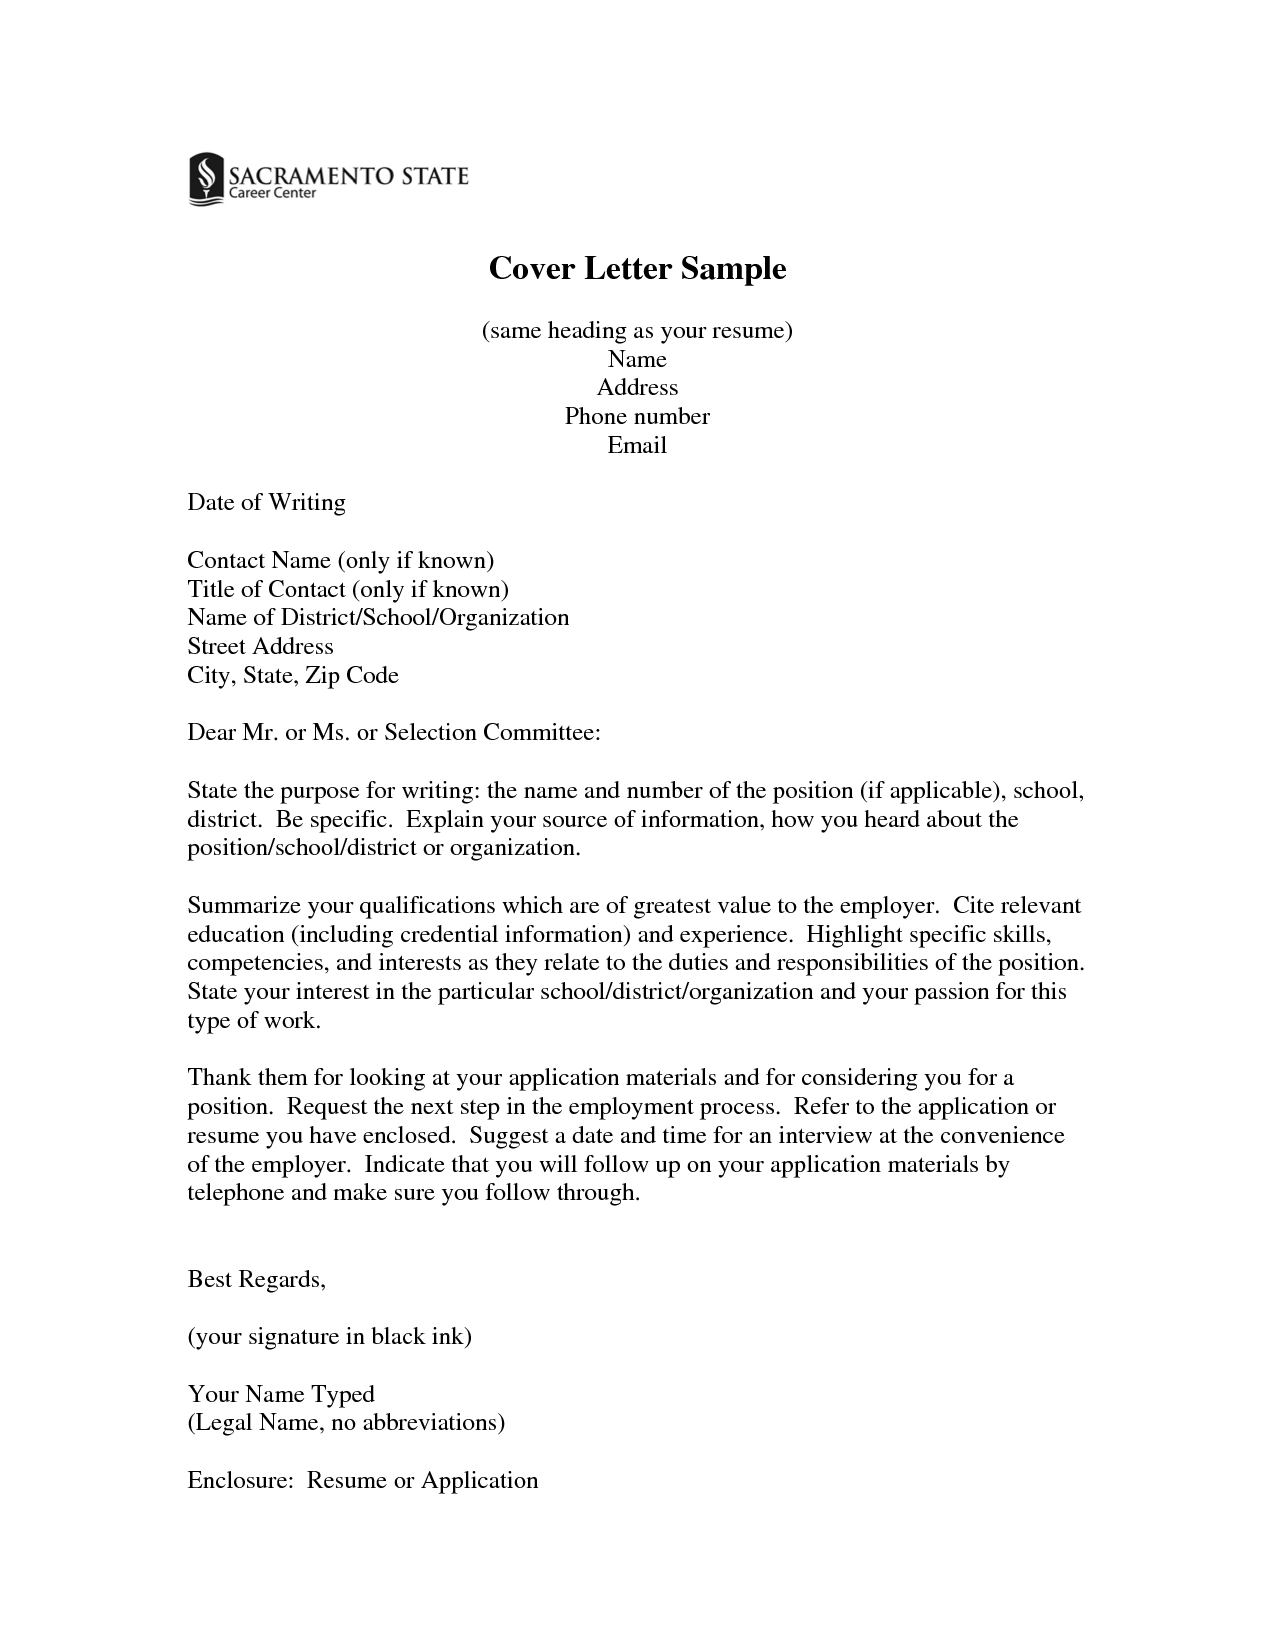 cover letter critique resume essay outline - Cover Letter Critique